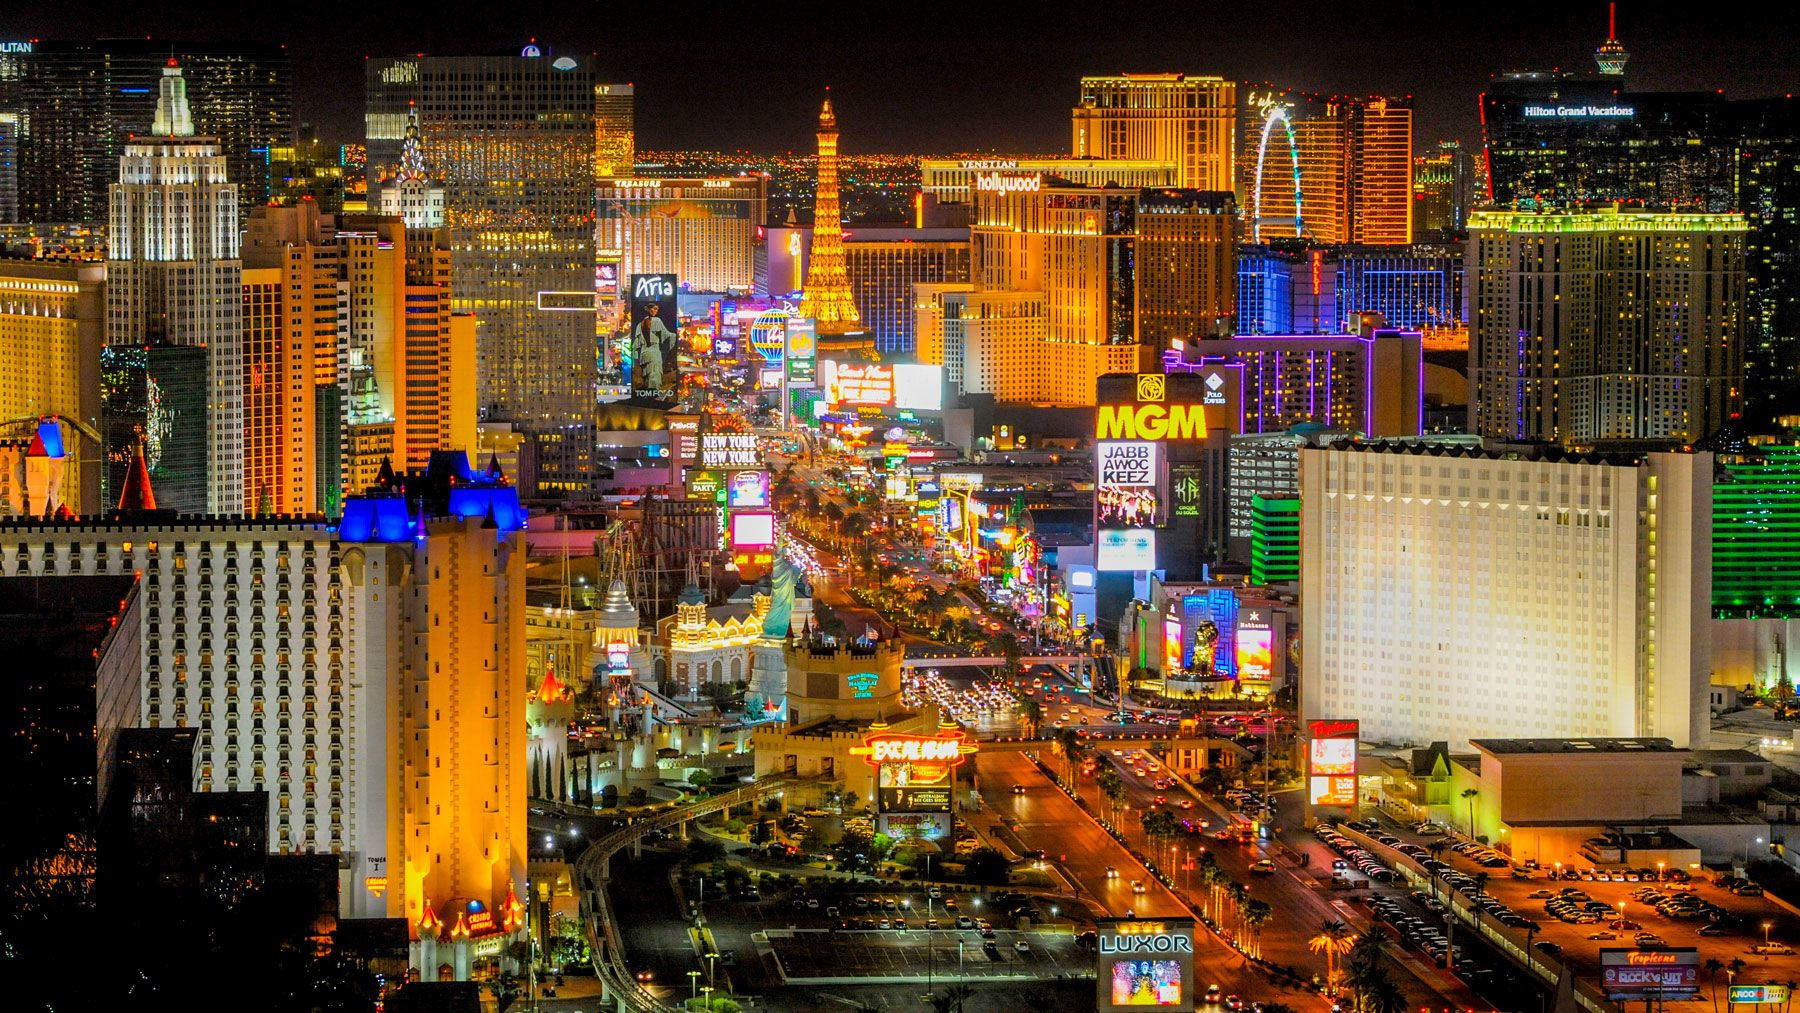 Sports betting propels casinos to 4th straight year of revenue gains